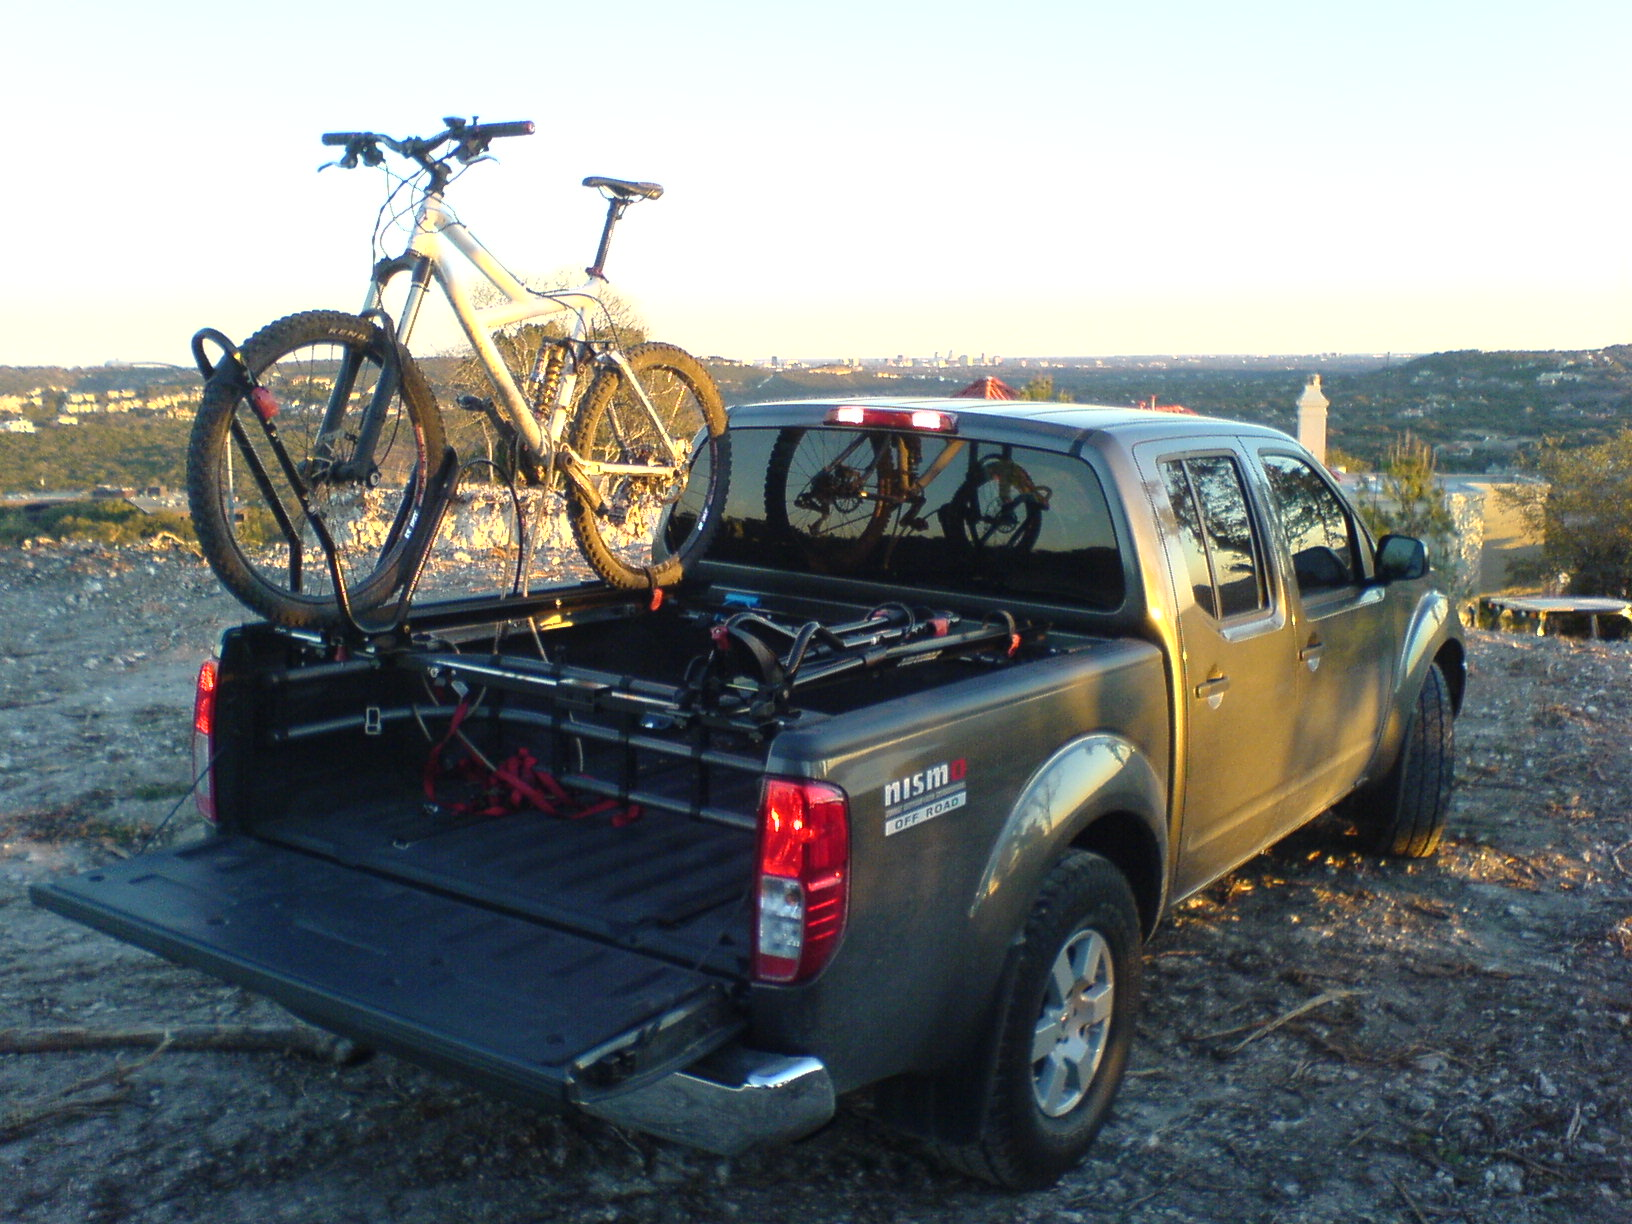 Snowboard Roof Rack >> Mountain Bike Roof Rack & Snowboard Roof Rack - Page 2 - Nissan Frontier Forum